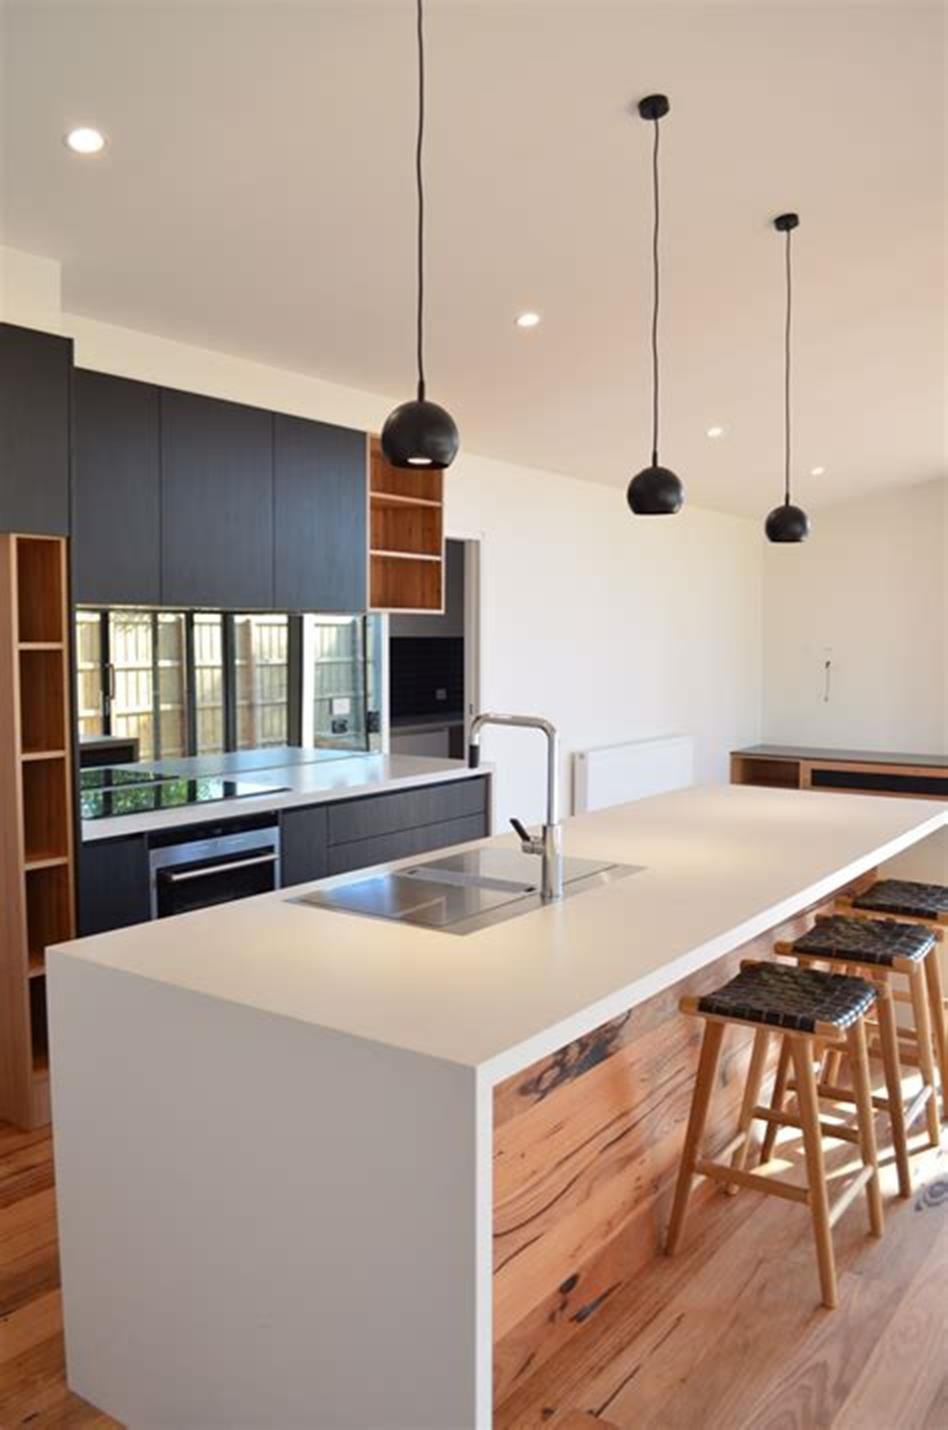 42 Most Popular Industrial Kitchen Design and Decor Ideas